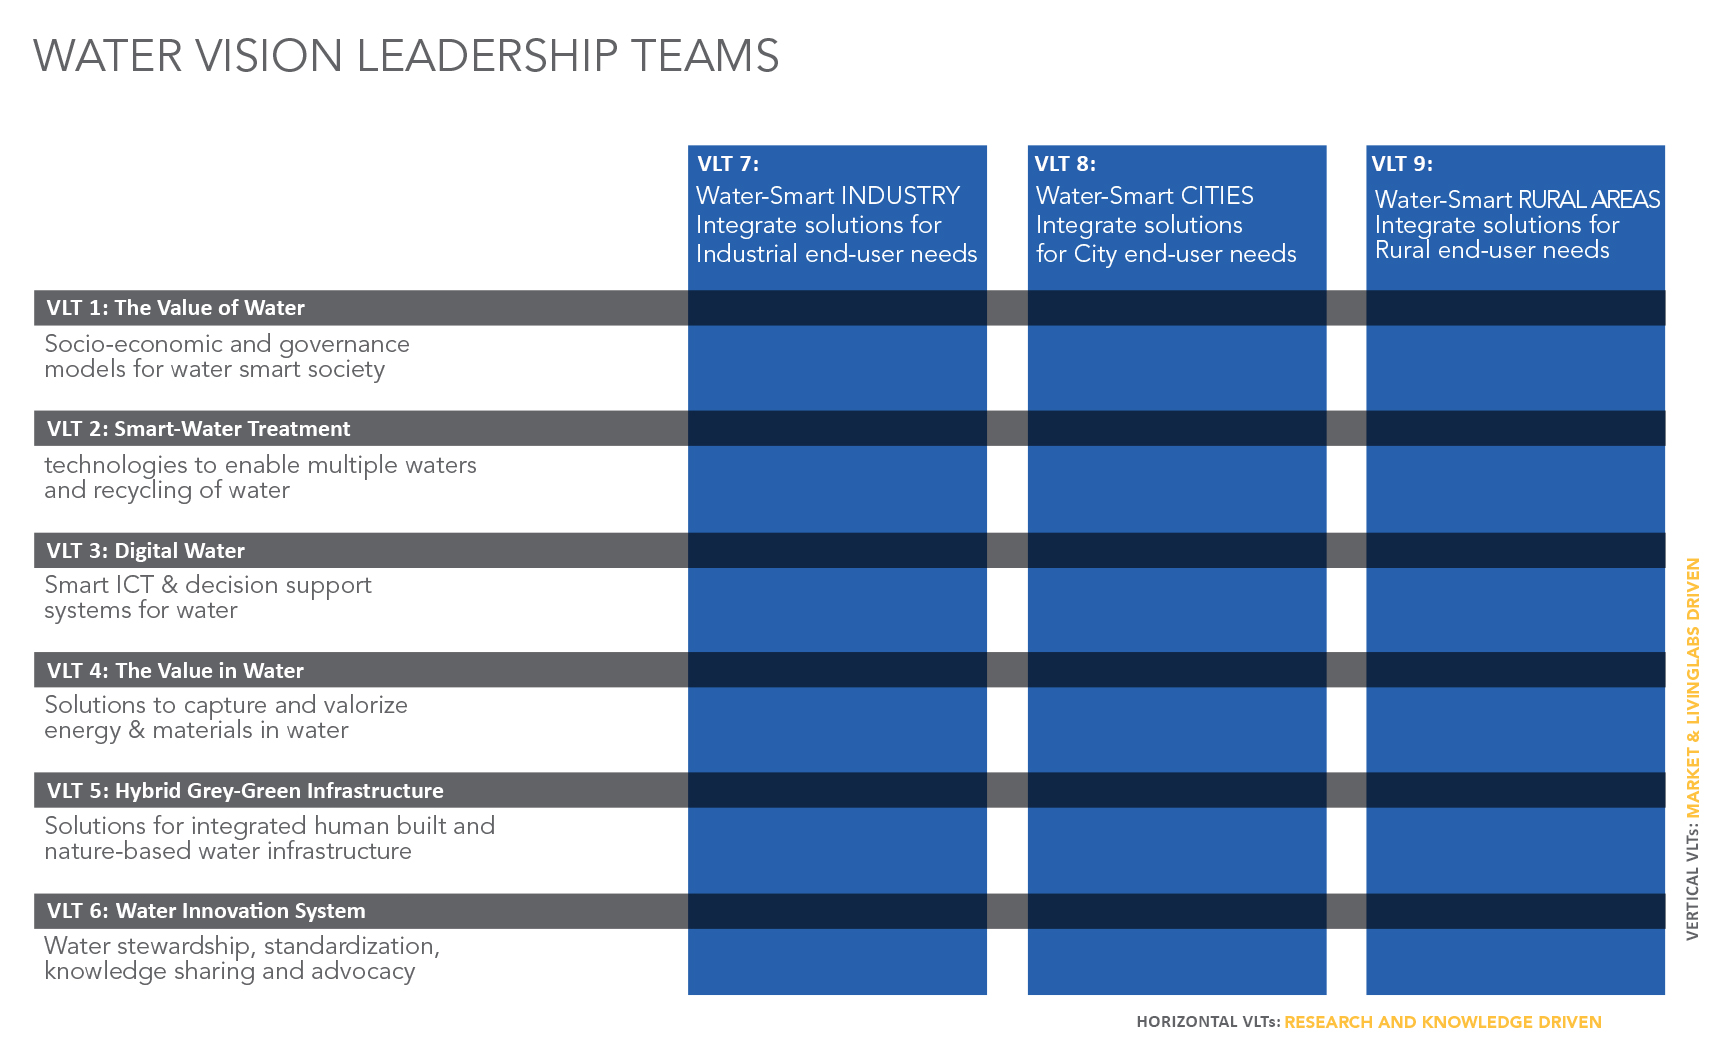 WE Vision Leadership Teams matrix